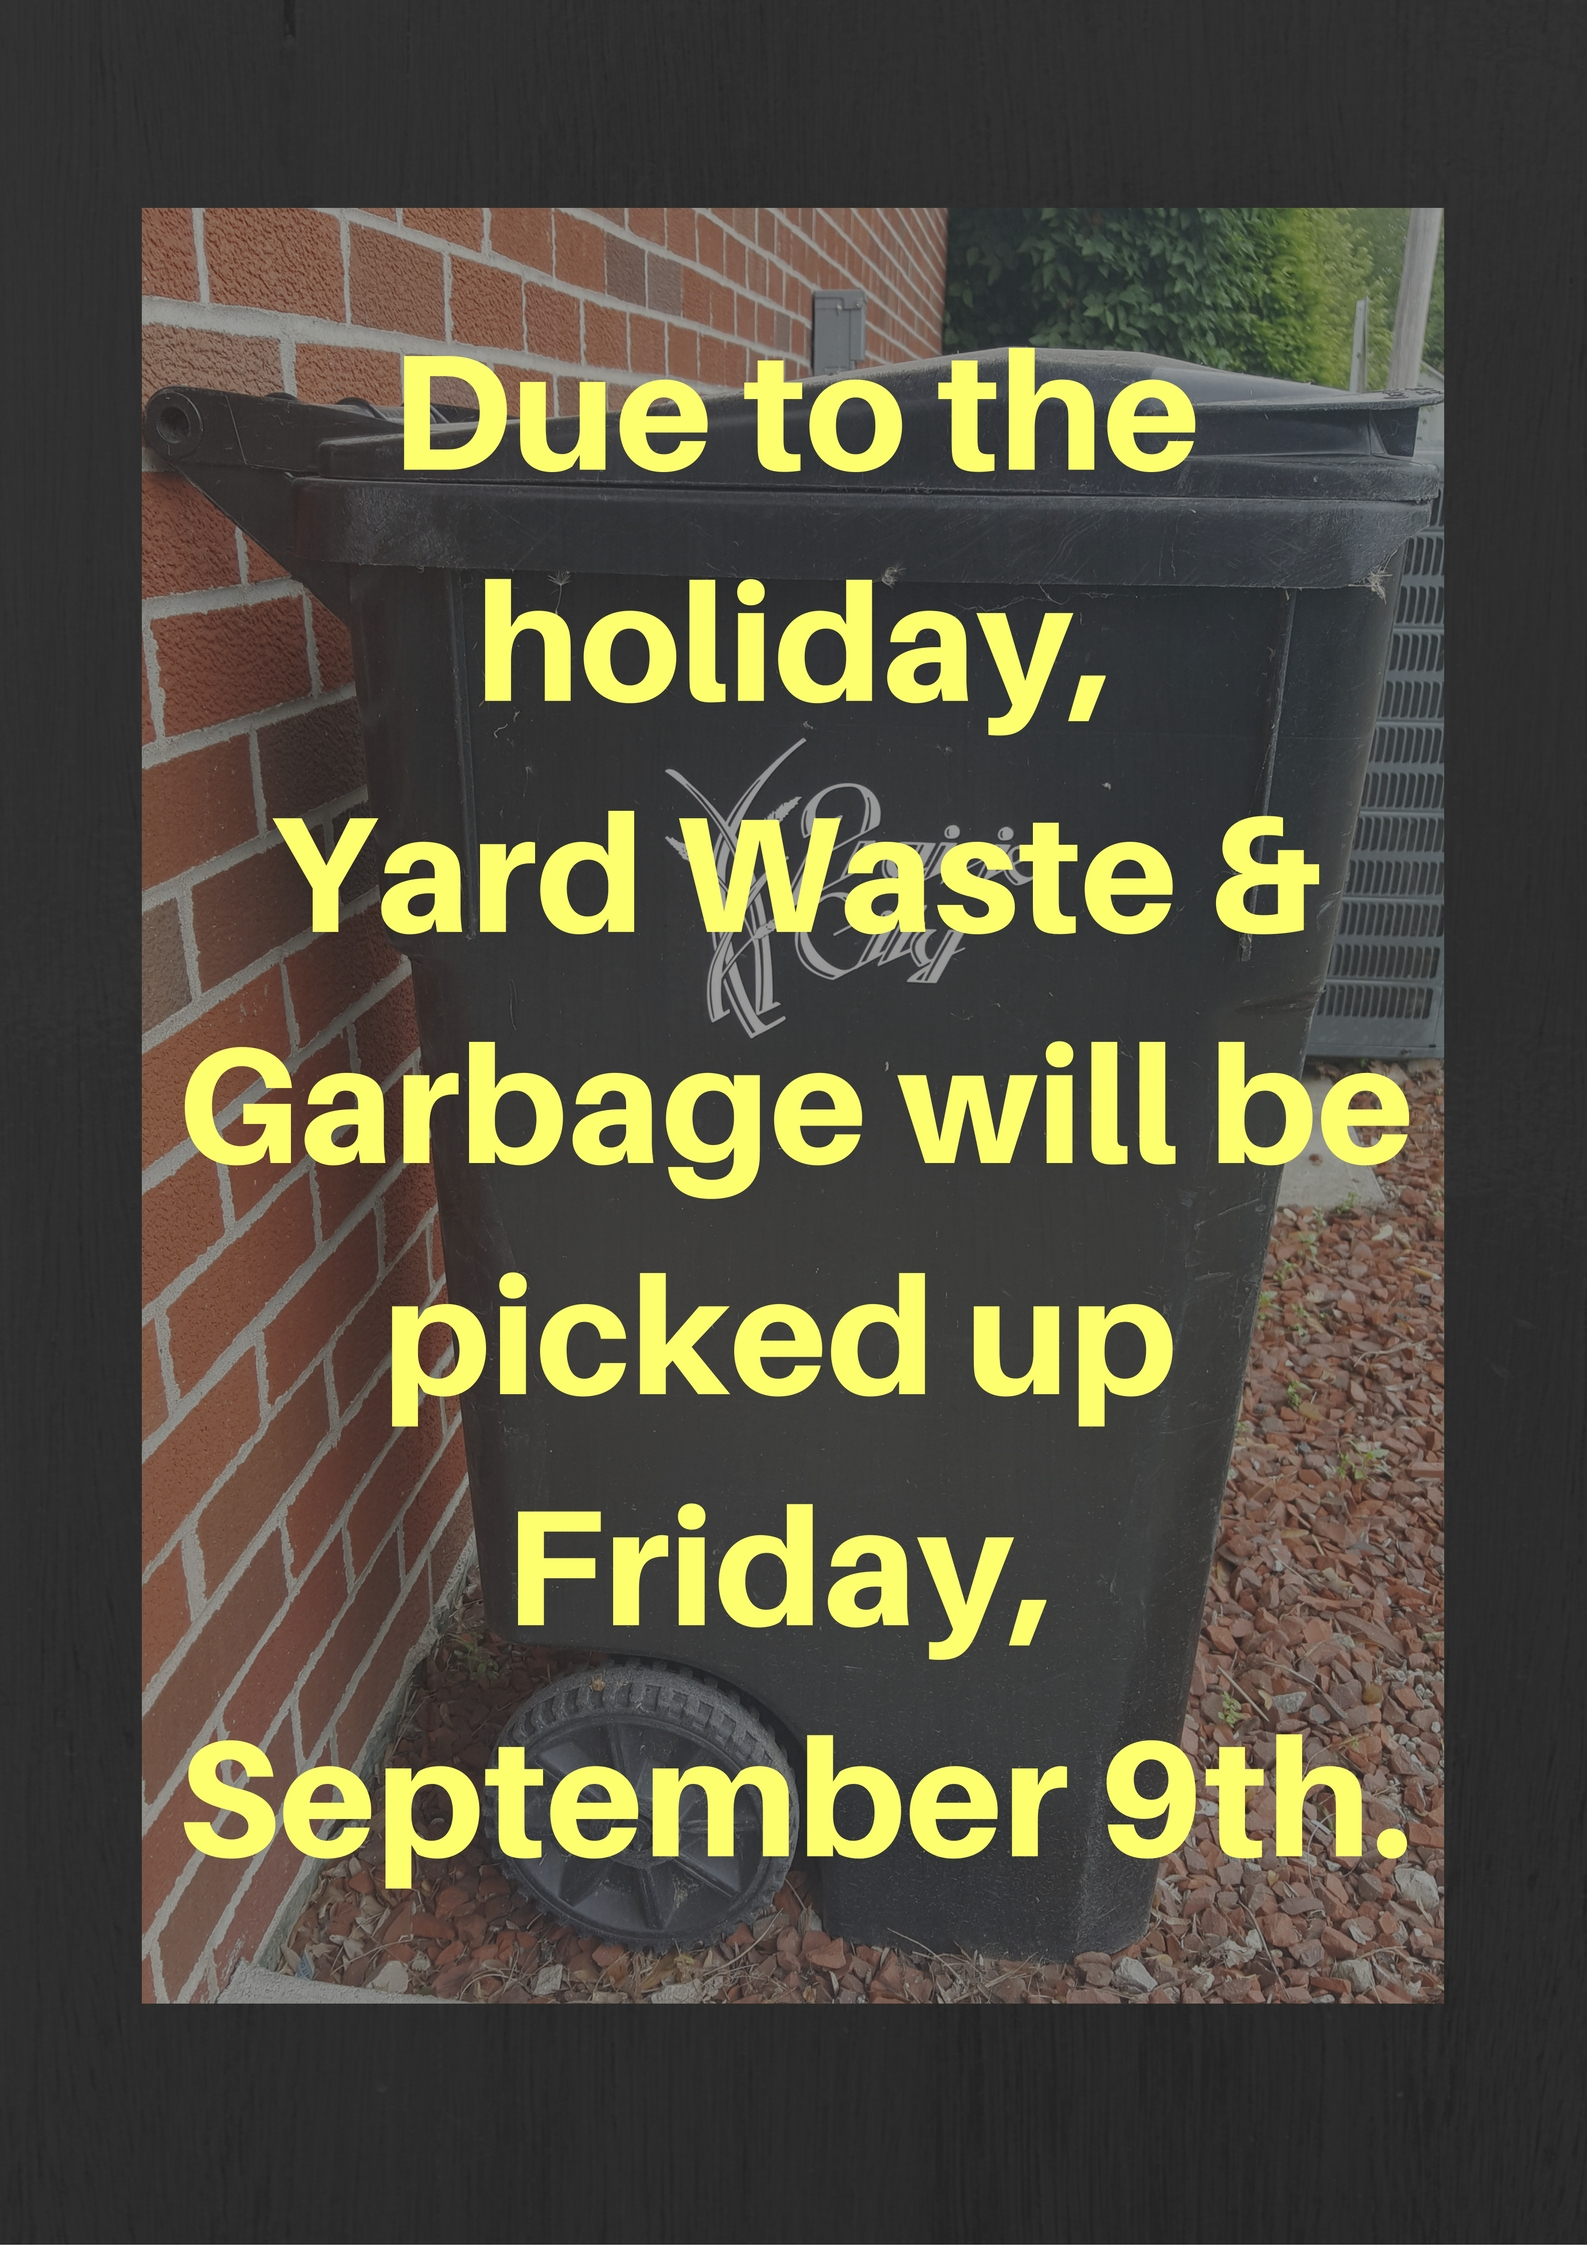 Due to Memorial DayYard Waste &Garbage will be picked up May 27th.